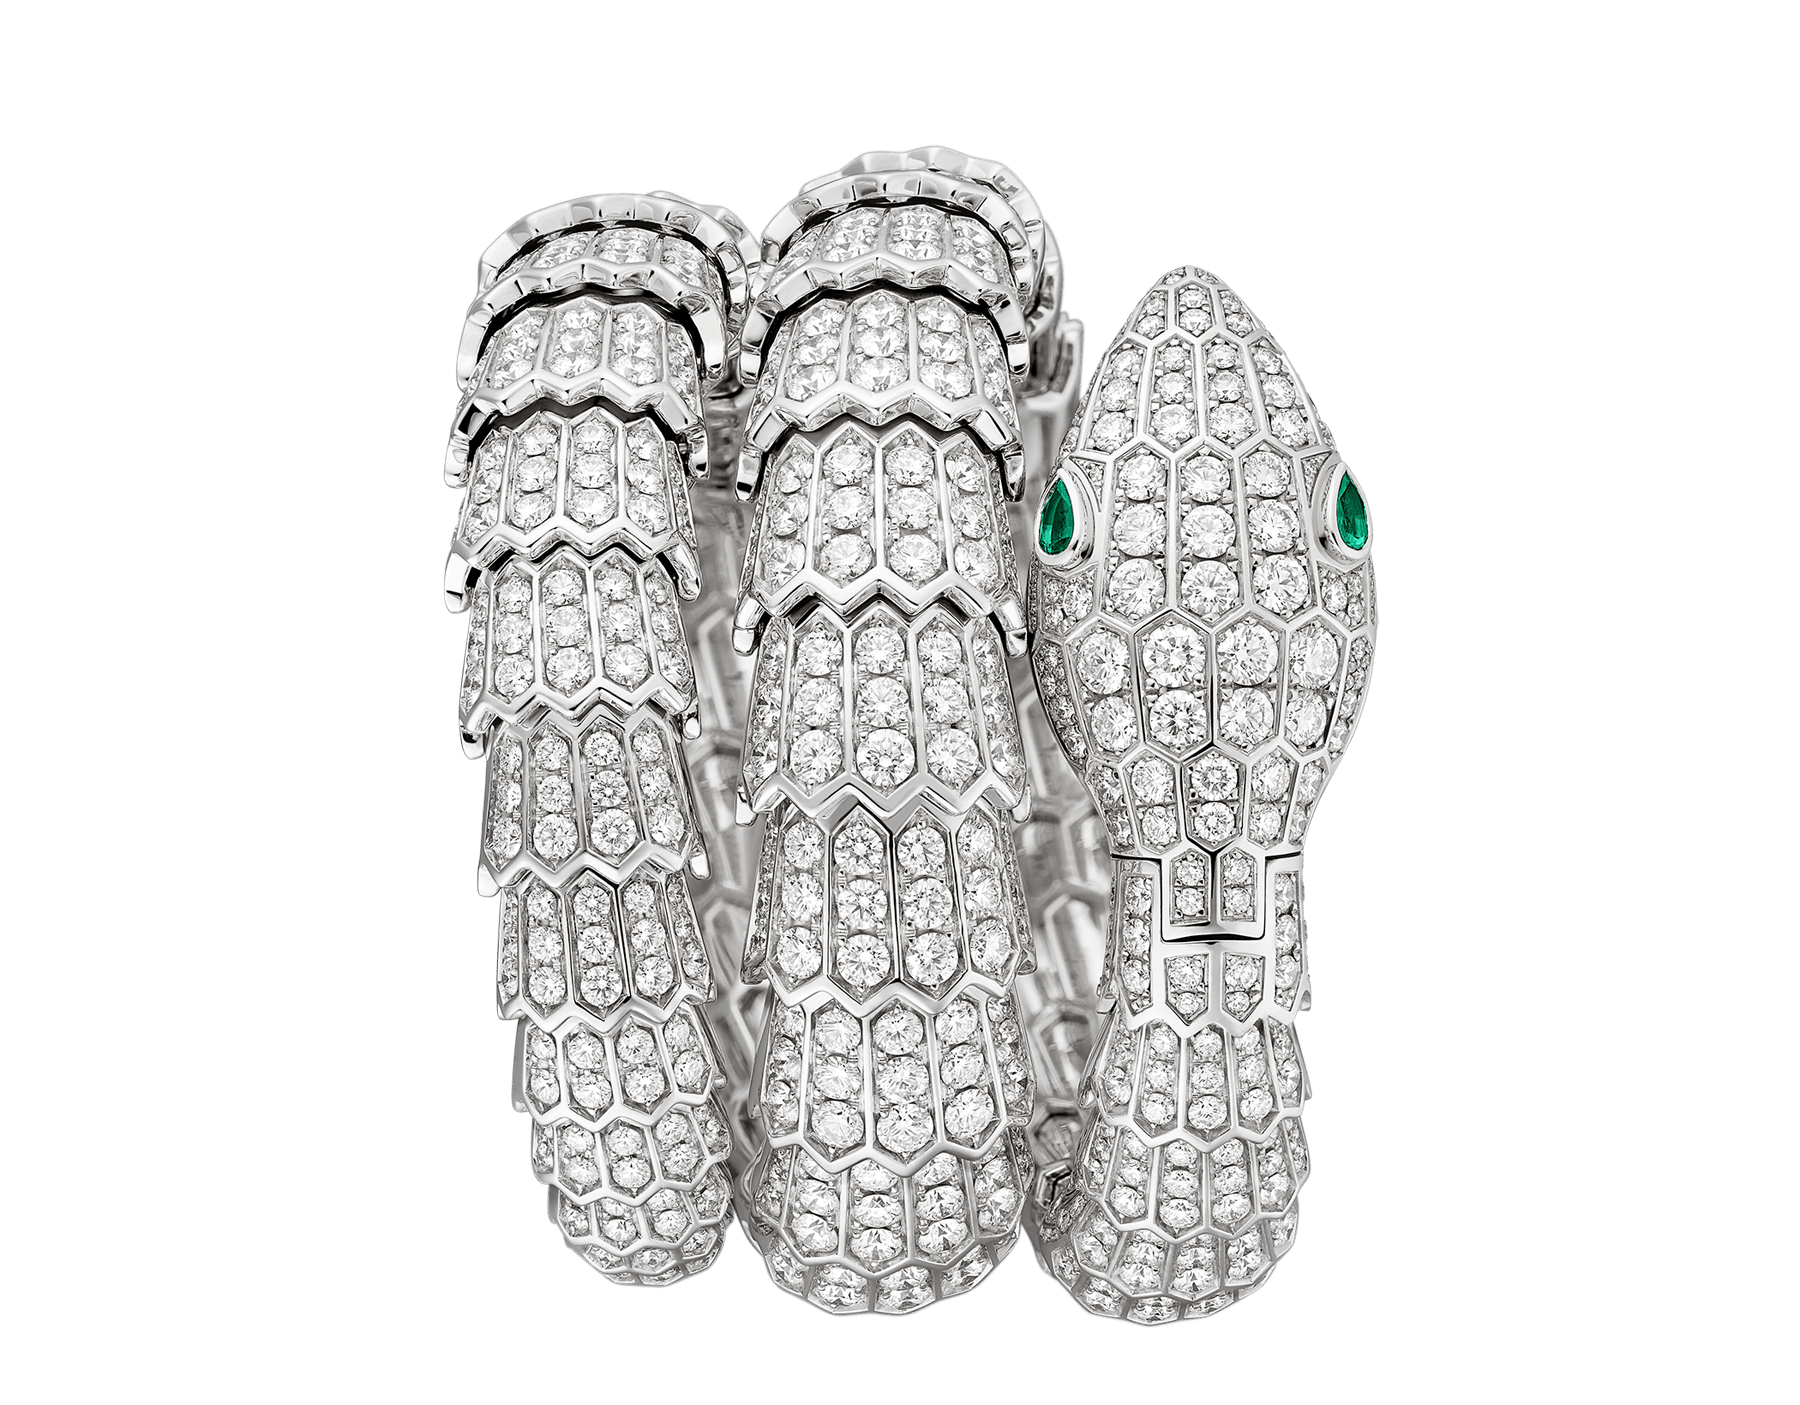 Serpenti Secret Watch with 18 kt white gold head, dial and double spiral bracelet, all set with brilliant cut diamonds, emerald eyes and 18 kt white gold case. 102701 image 1